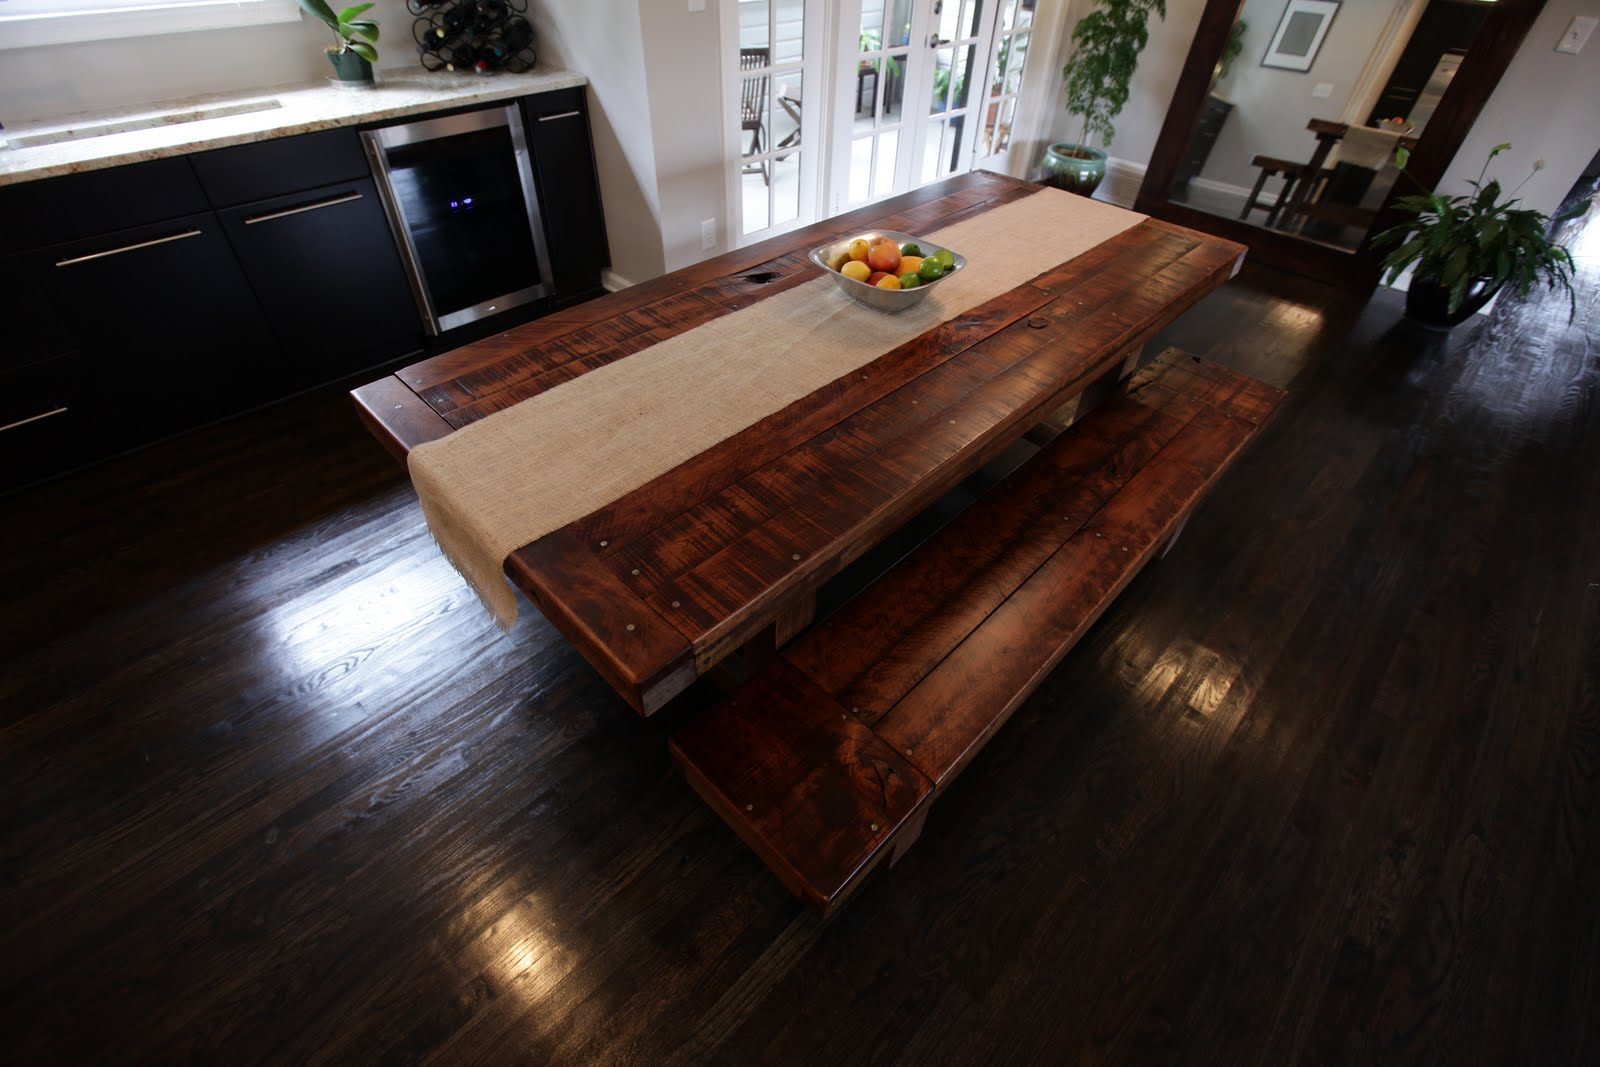 Magnificent Rustic Wood Dining Room Tables 1600 x 1067 · 155 kB · jpeg